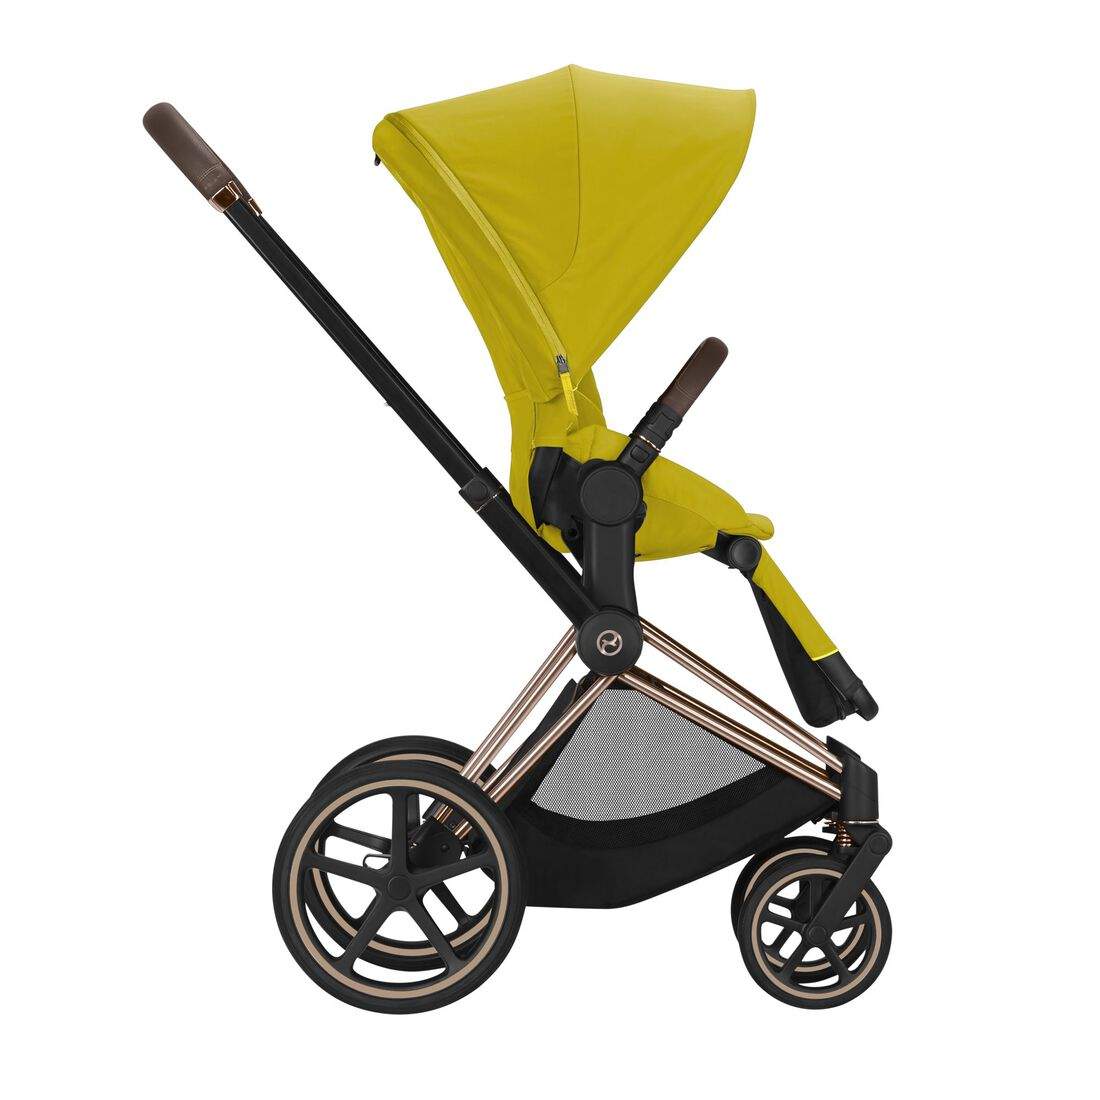 CYBEX Priam Seat Pack - Mustard Yellow in Mustard Yellow large image number 3